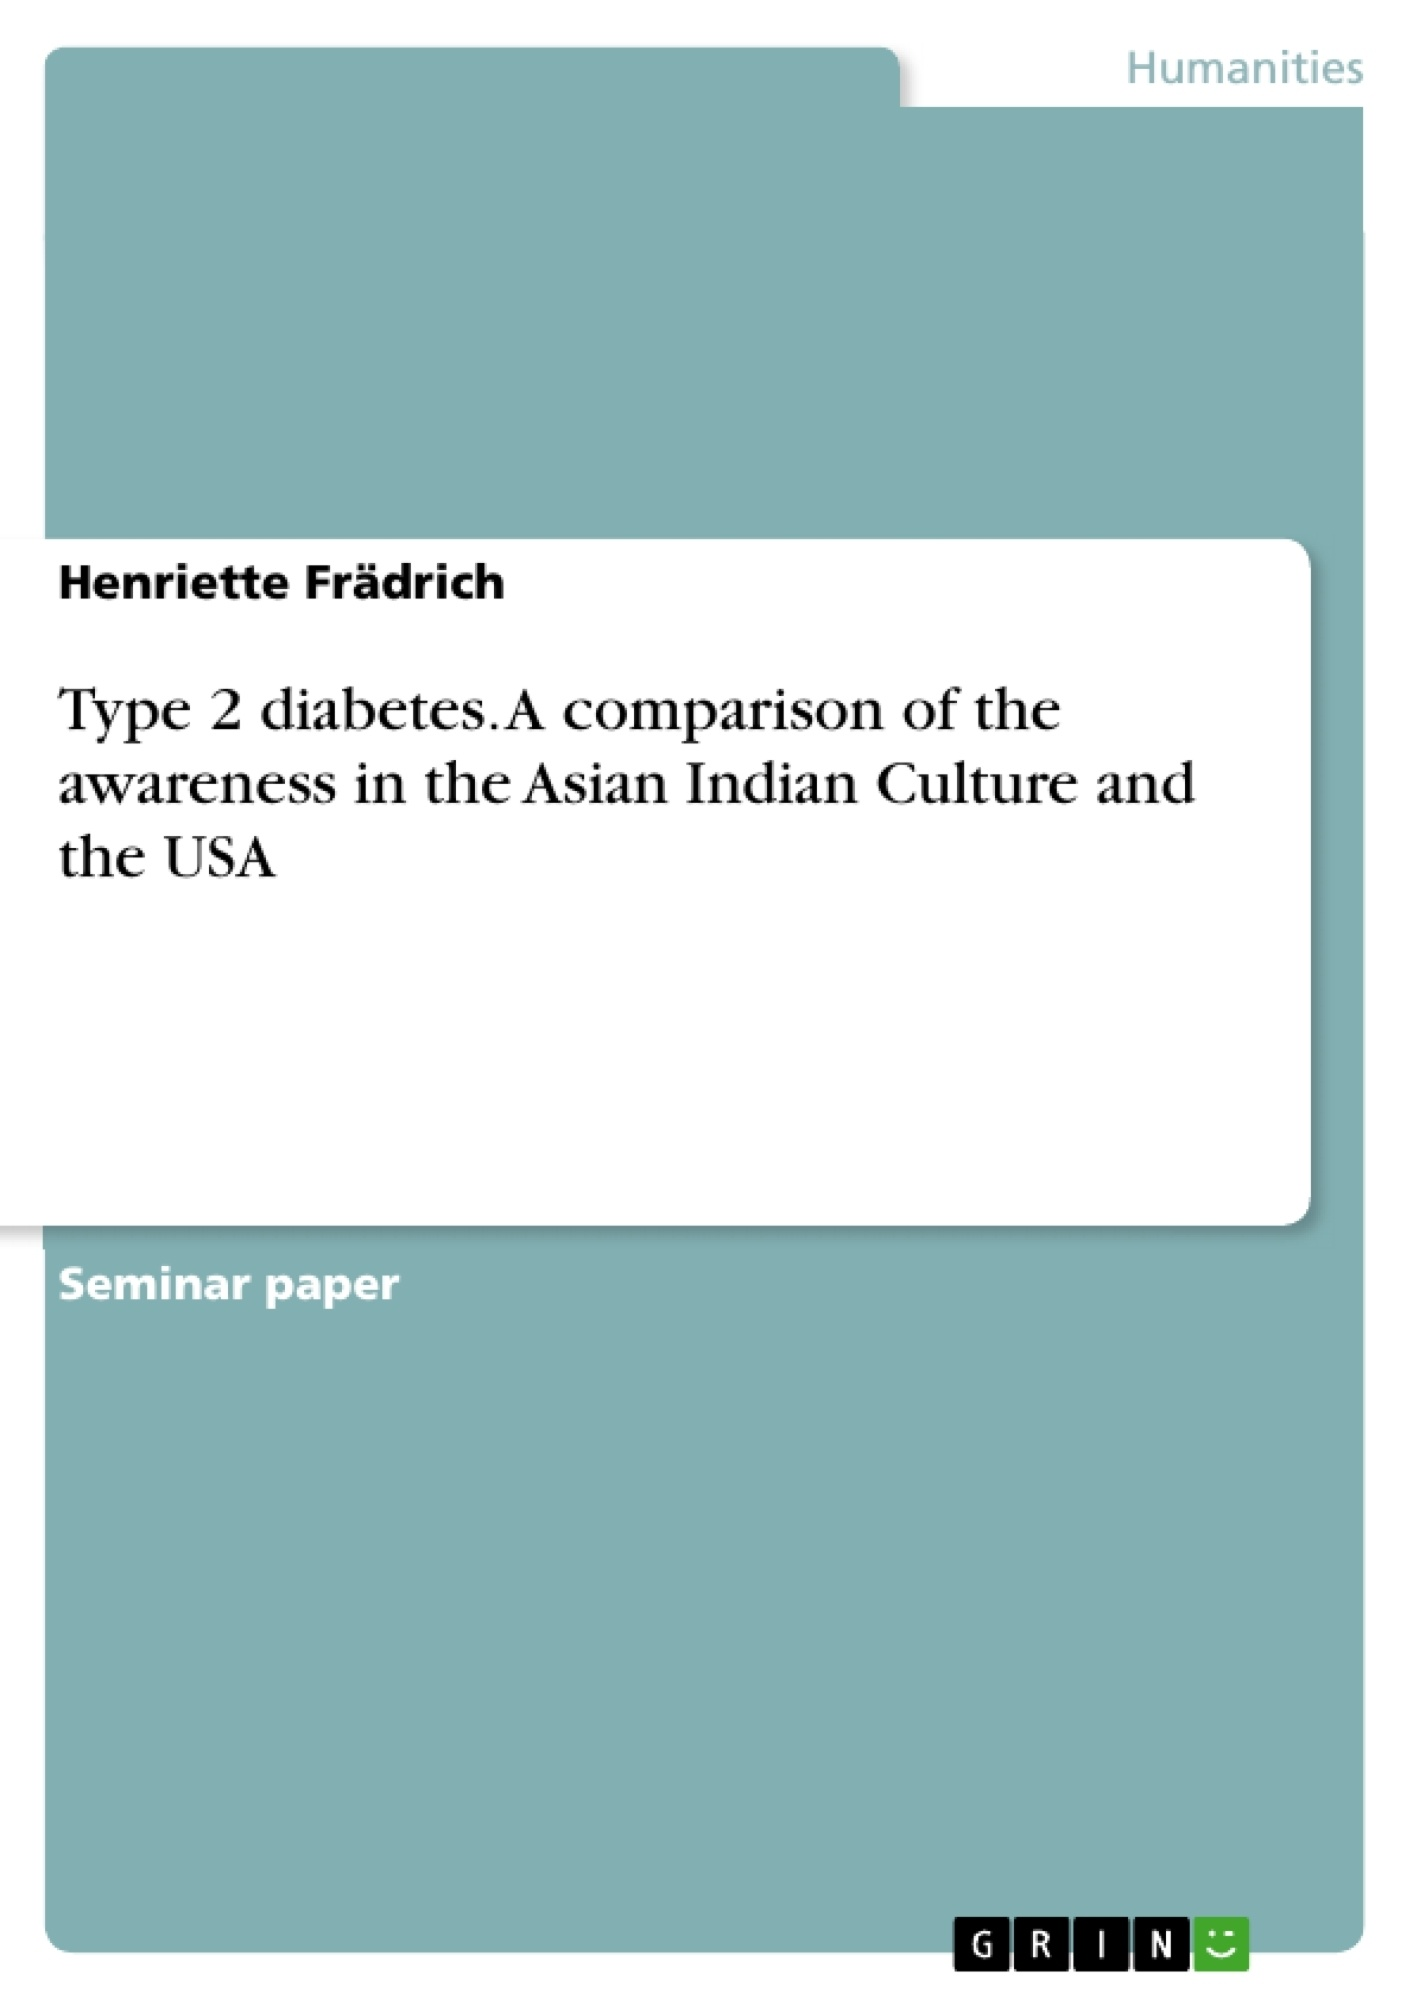 Title: Type 2 diabetes. A comparison of the awareness in the Asian Indian Culture and the USA